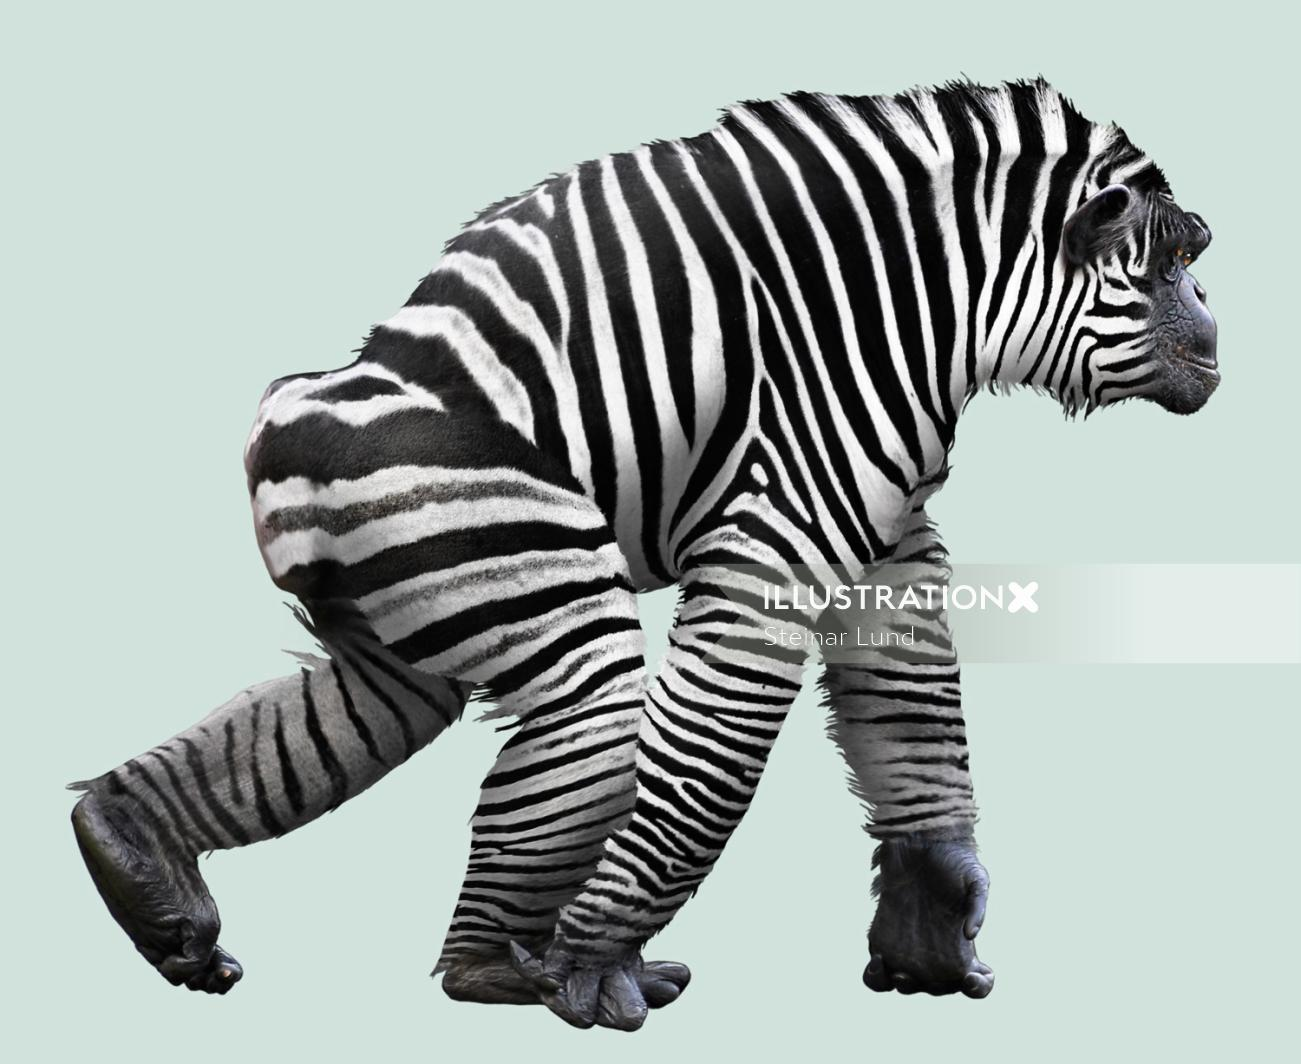 Hybrid between zebra and chimp illustration by Steinar Lund